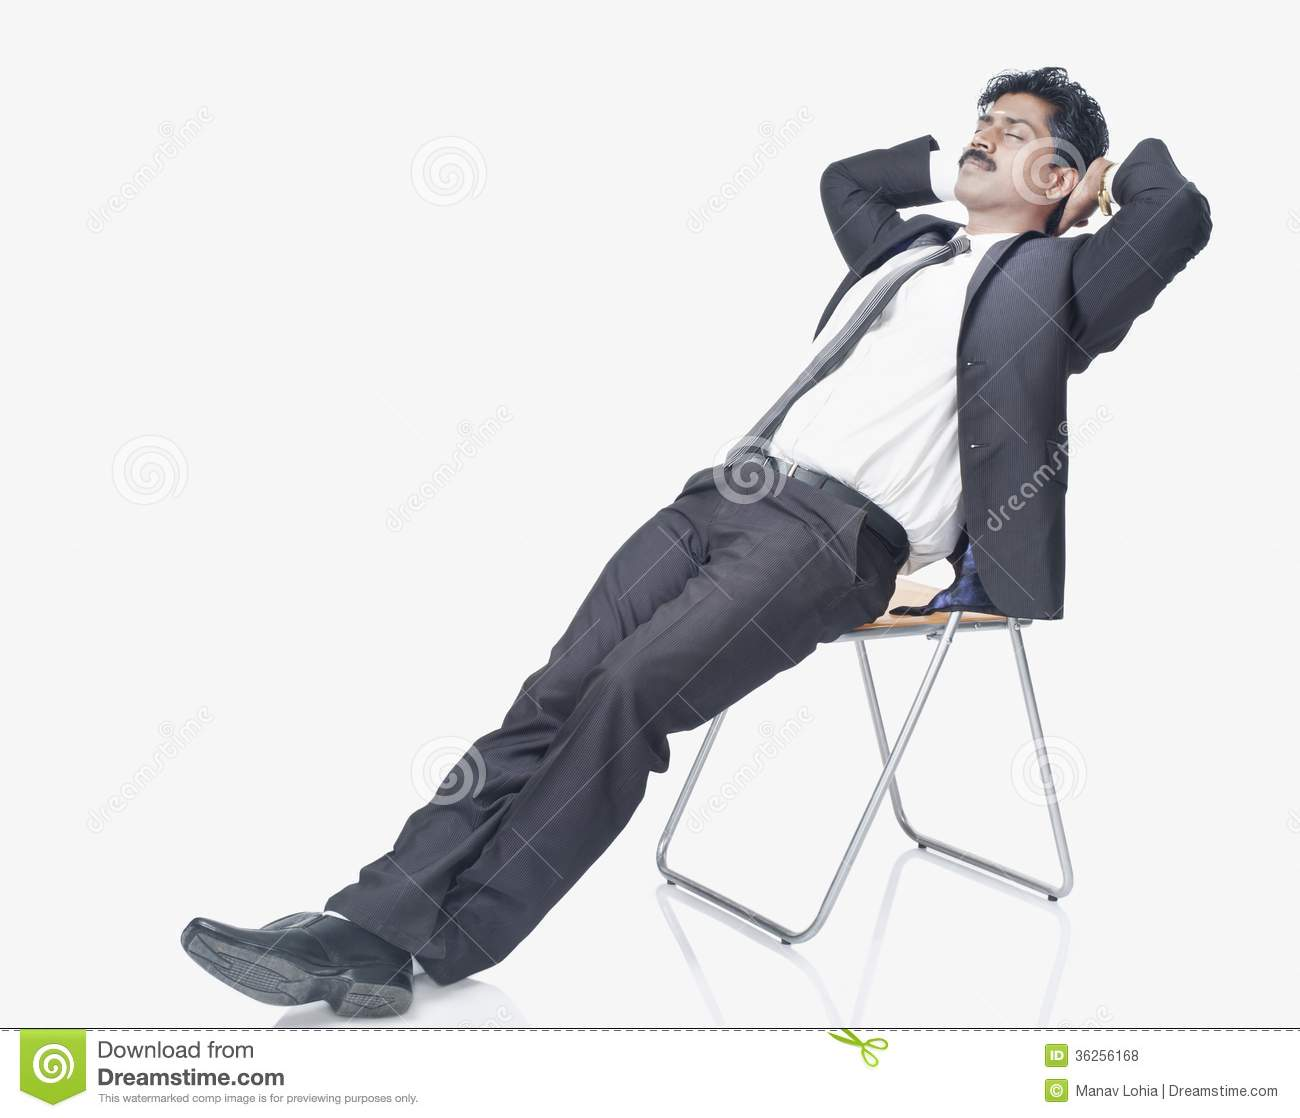 South Indian Businessman Resting On A Chair Royalty Free